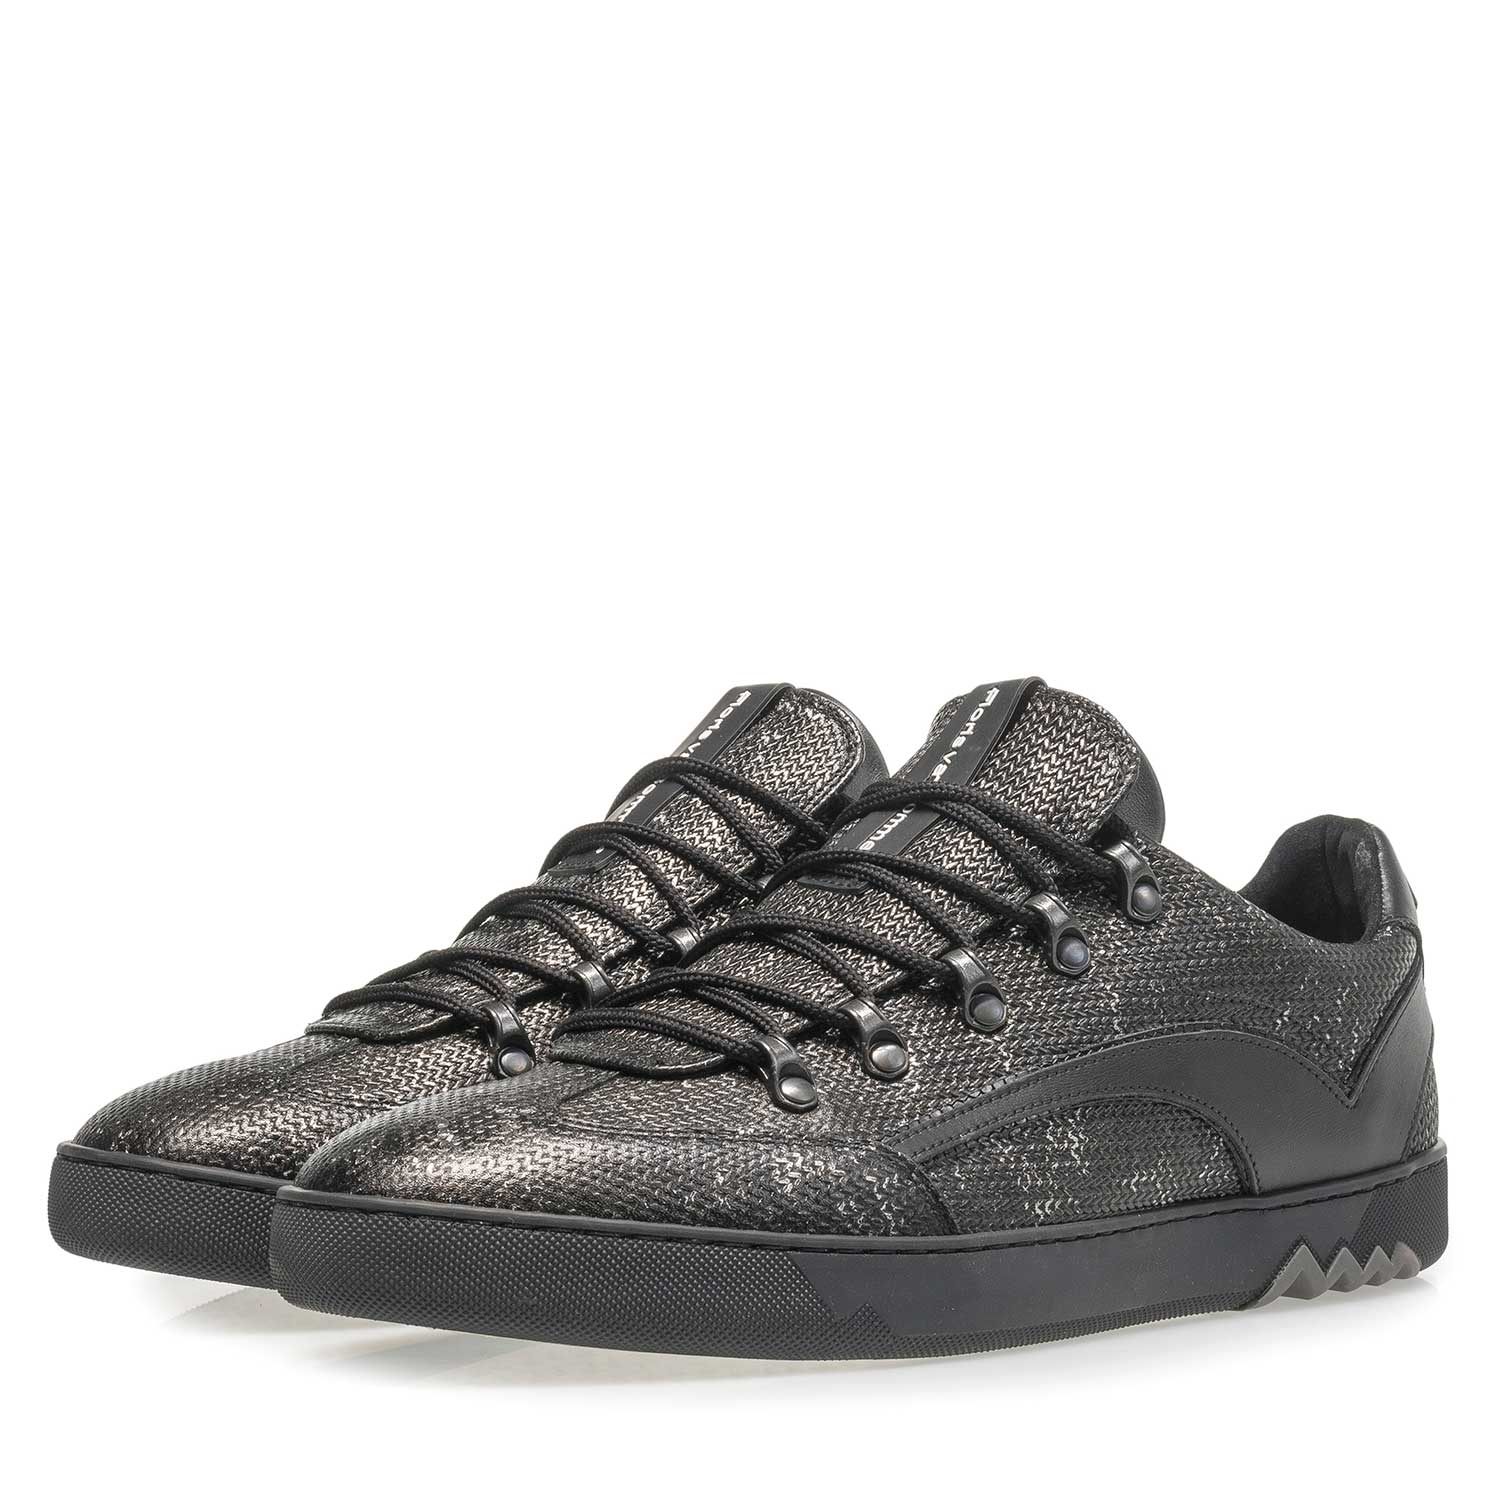 16464/03 - Dark grey leather lace shoe with metallic print